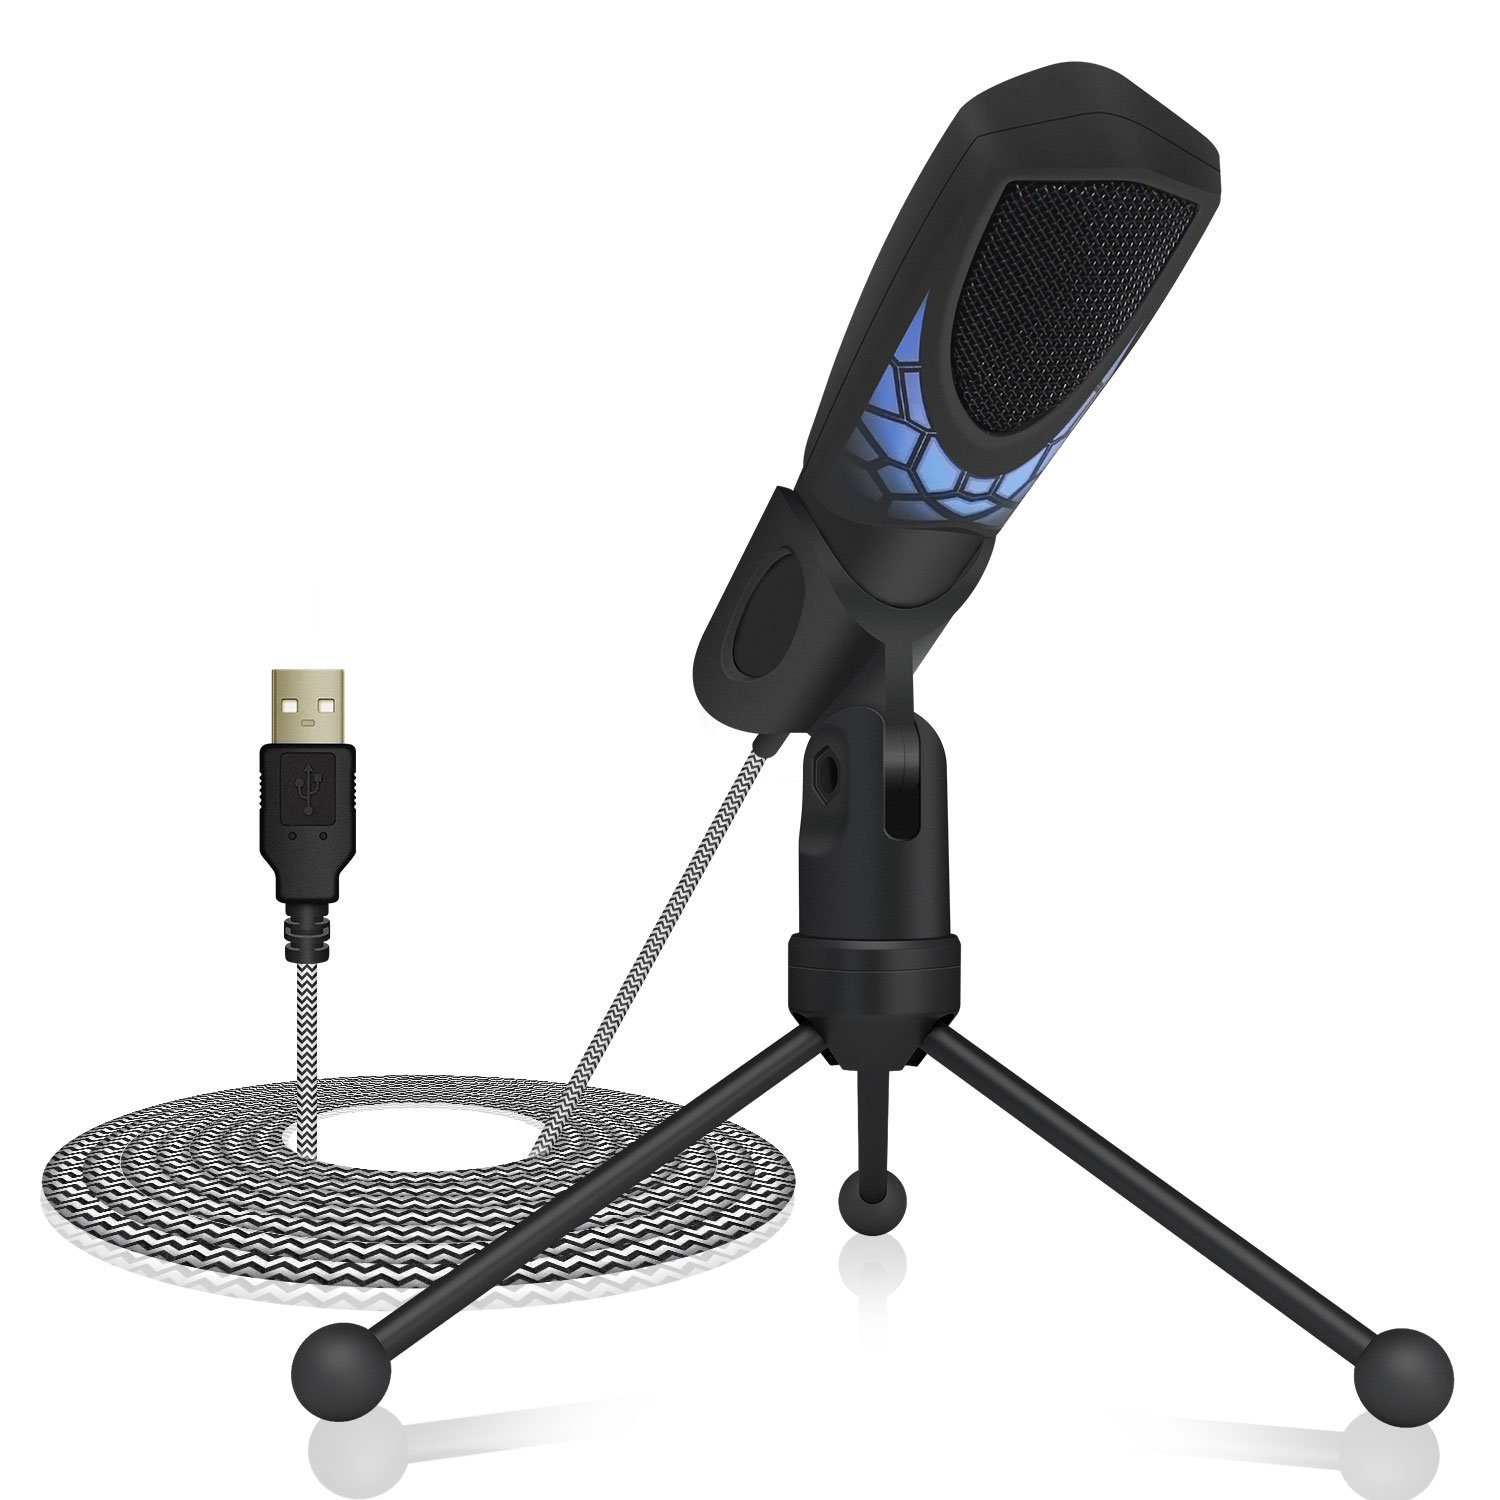 TONOR PC Microphone USB Computer Condenser Studio Mic Plug & Play with Tripod Stand & Pop Filter for Chatting/Skype/Youtube/Recording/Gaming/Podcasting for iMAC PC Laptop Desktop Windows Computer